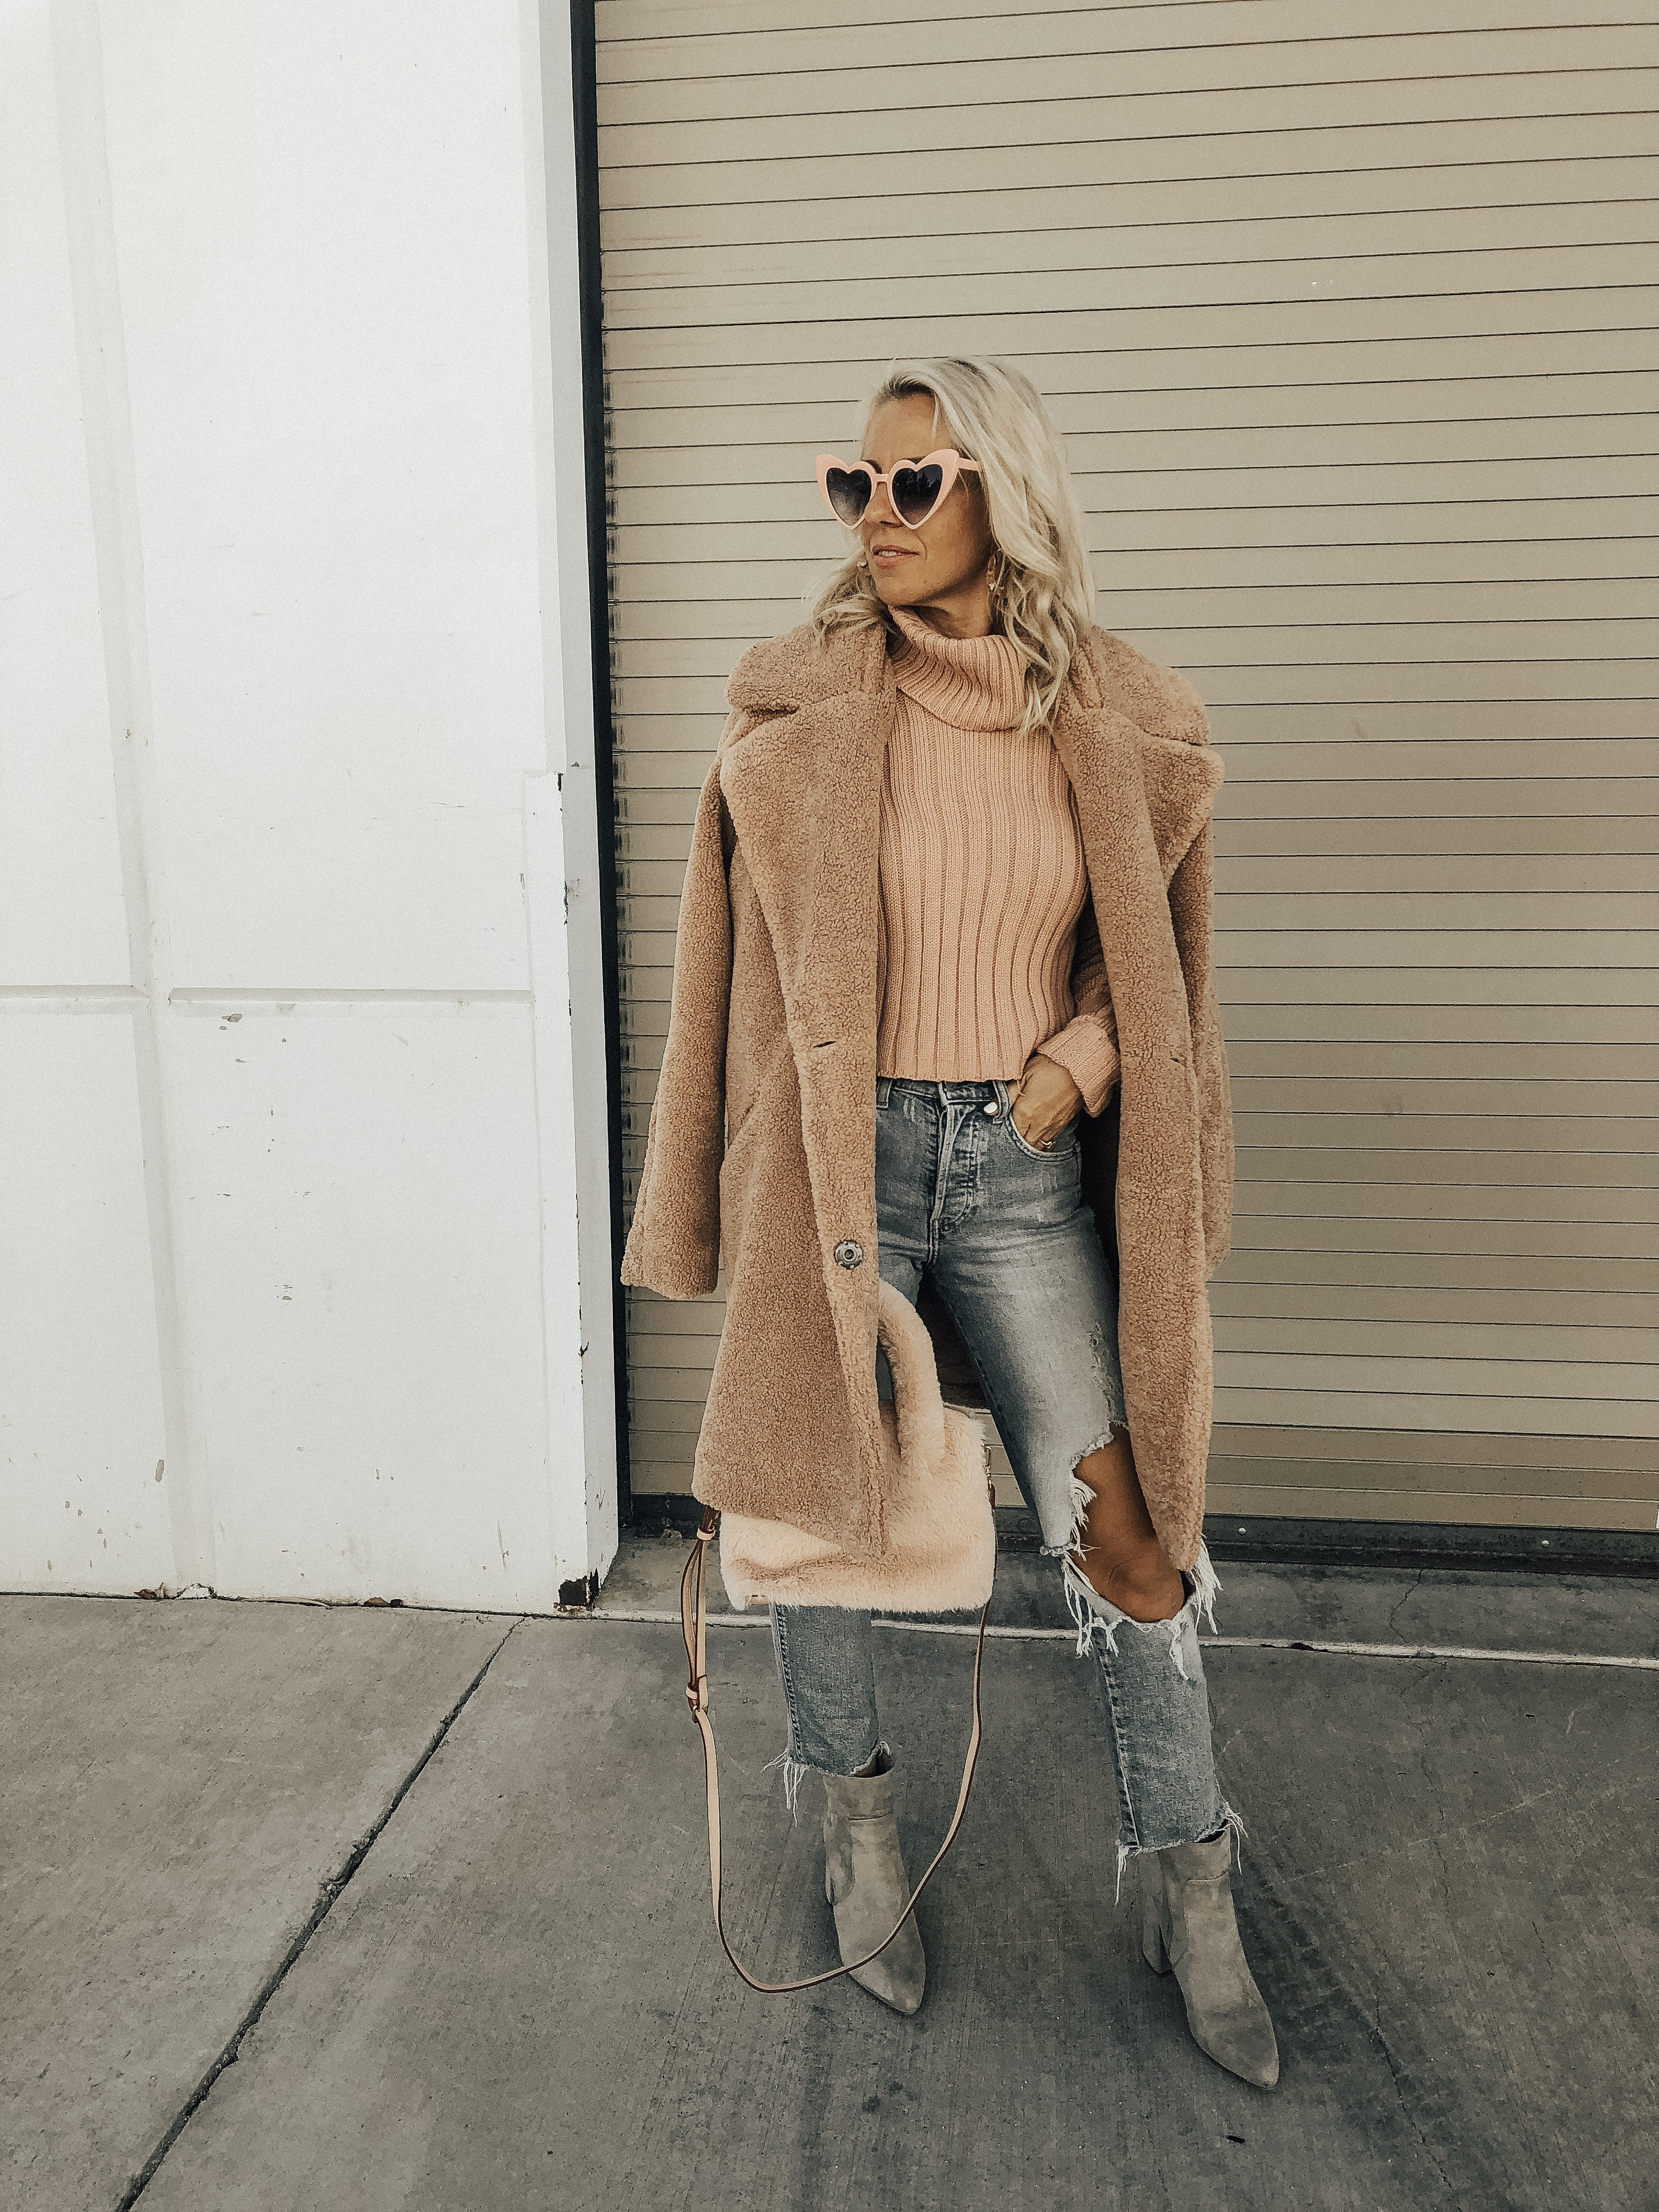 THINK PINK- Jaclyn De Leon Style + pink for October + cozy tutleneck sweater + teddy coat + distressed denim + pink faux fur handbag + heart sunglasses + casual style + fall fashion + street style + mom style + what to wear this season + winter outfit